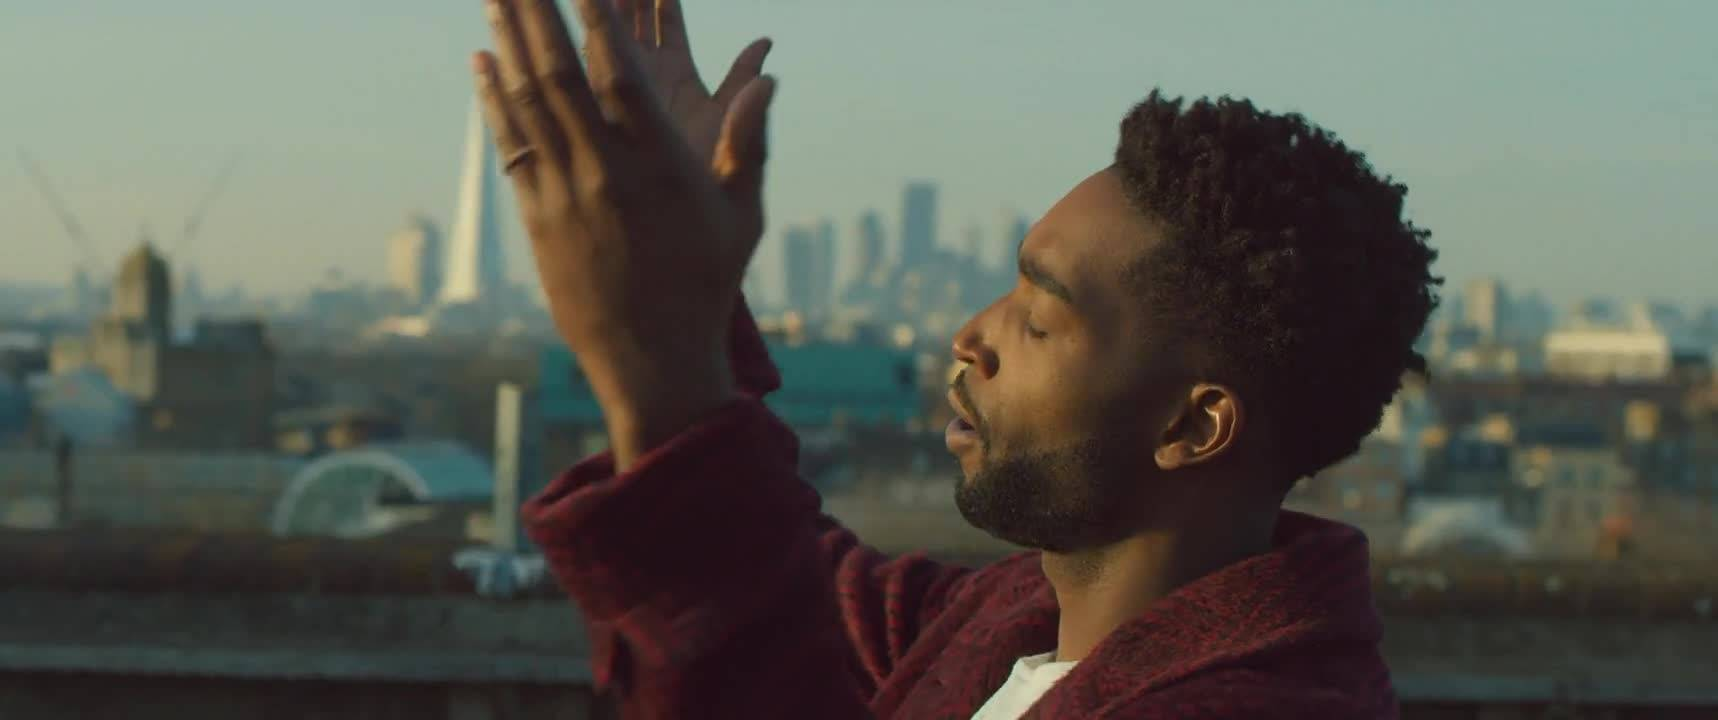 Tinie Tempah - Find Me (feat. Jake Bugg) (Оfficial video)